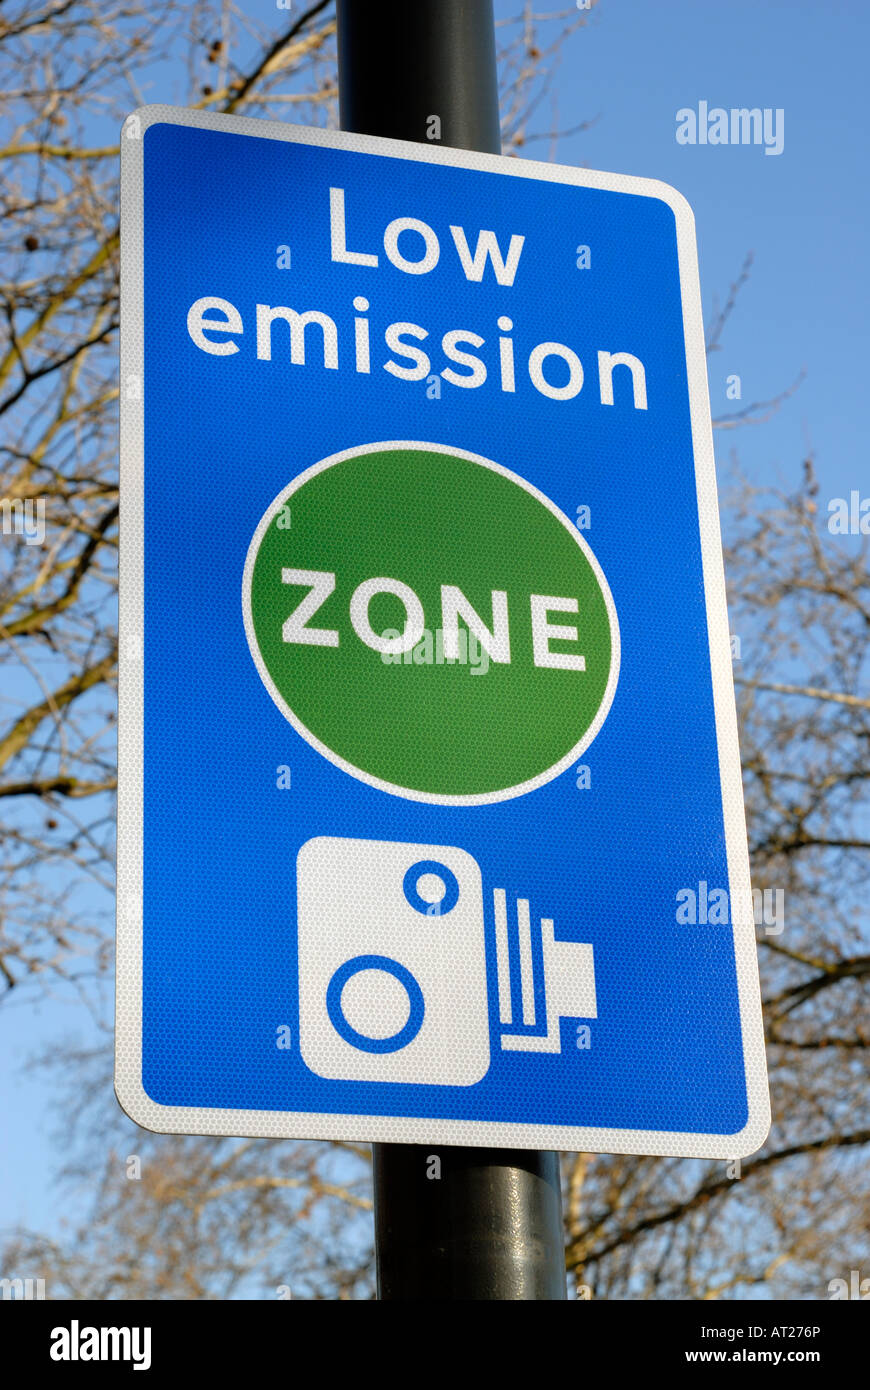 Low emission zone London - Stock Image